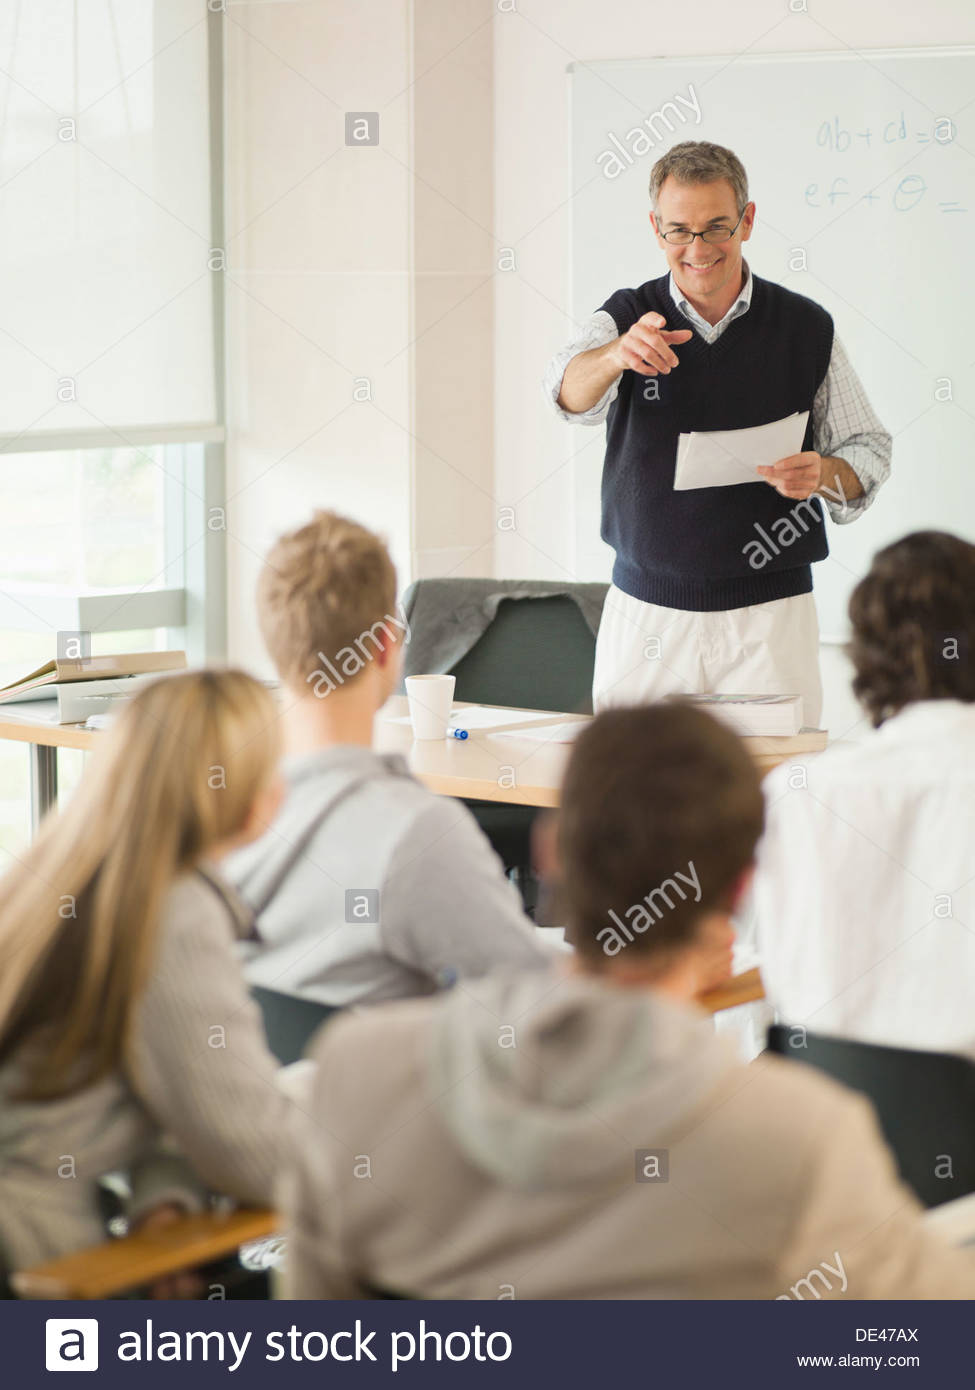 Professor at front of classroom - Stock Image